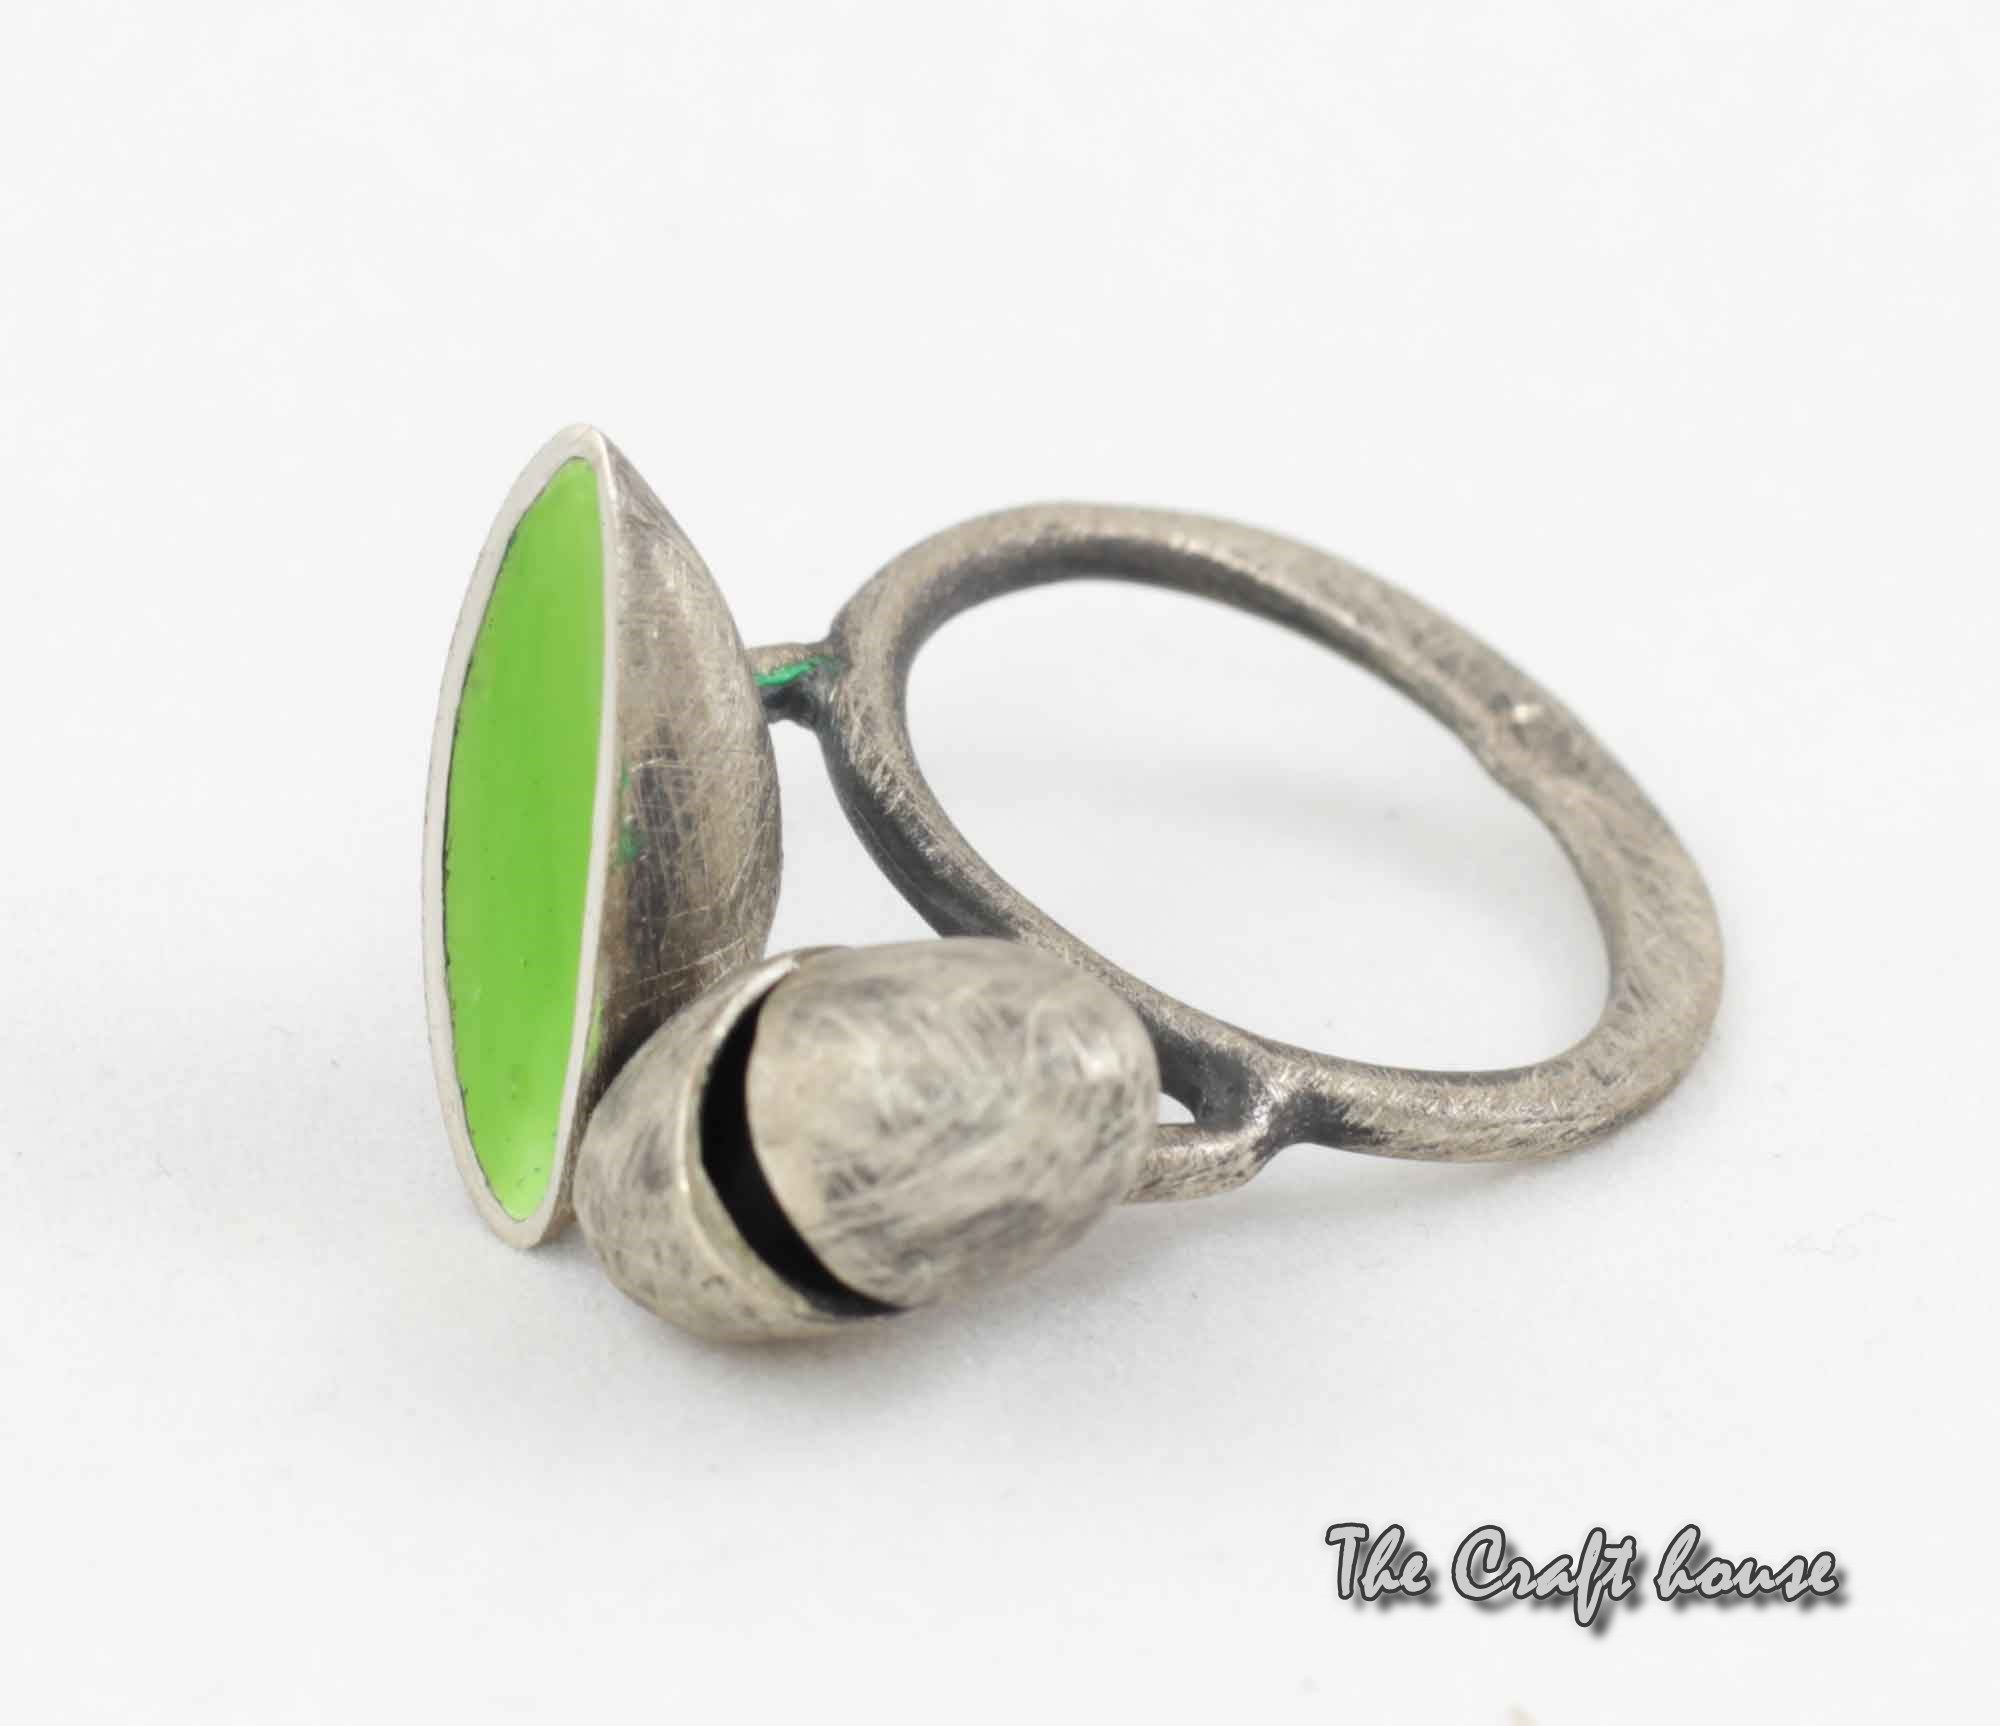 Silver ring with green enamel